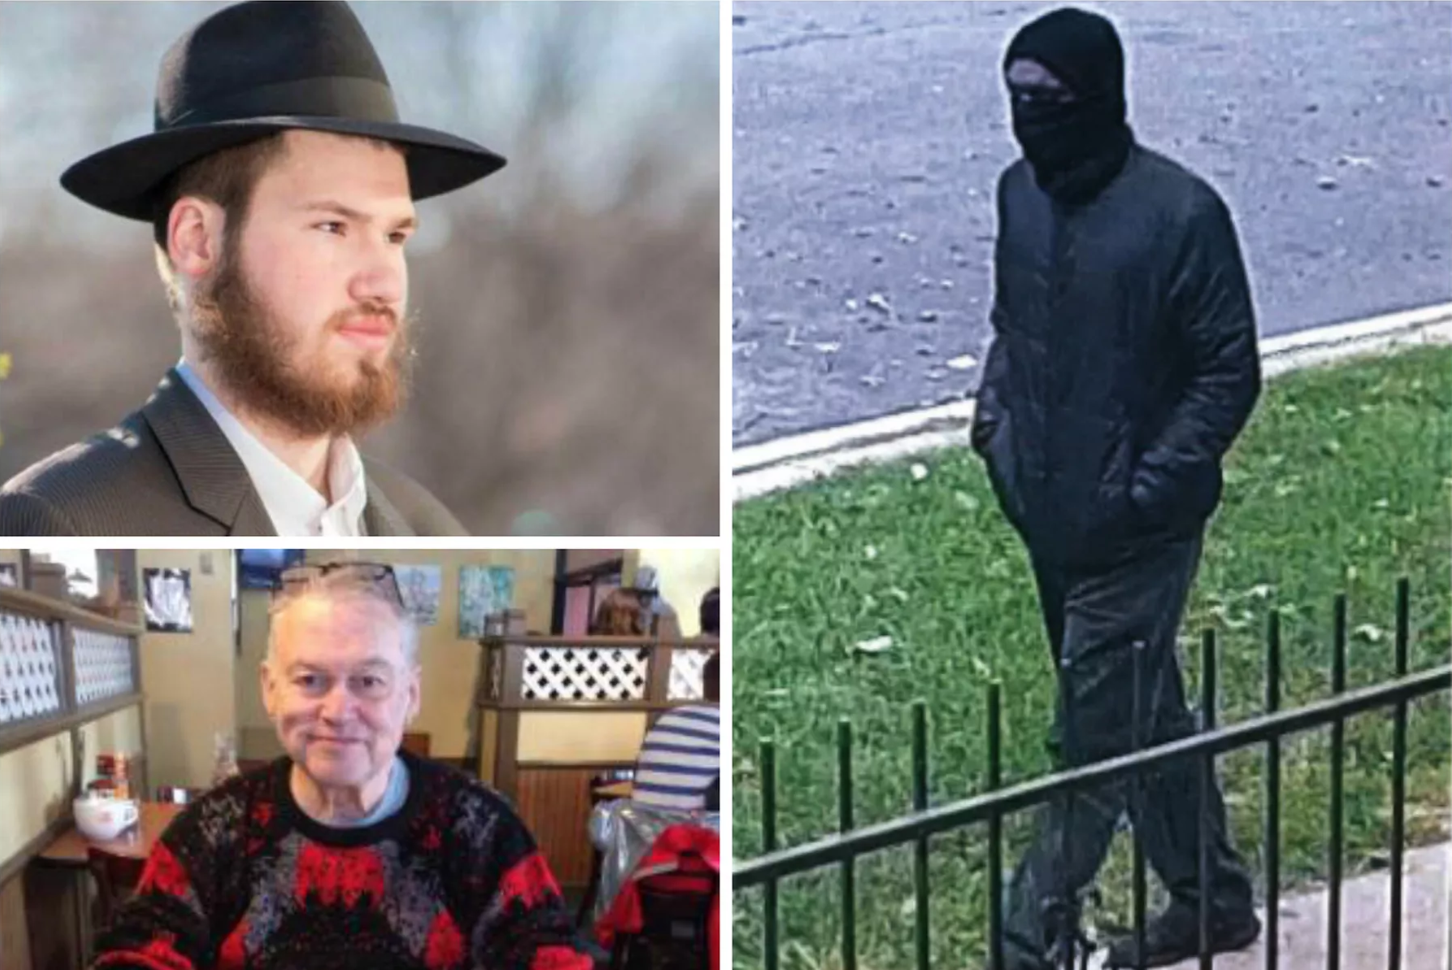 Previously released a surveillance photo of a masked man suspected in the murders of Eliyahu Moscowitz (top left) and Douglass Watts (bottom left).